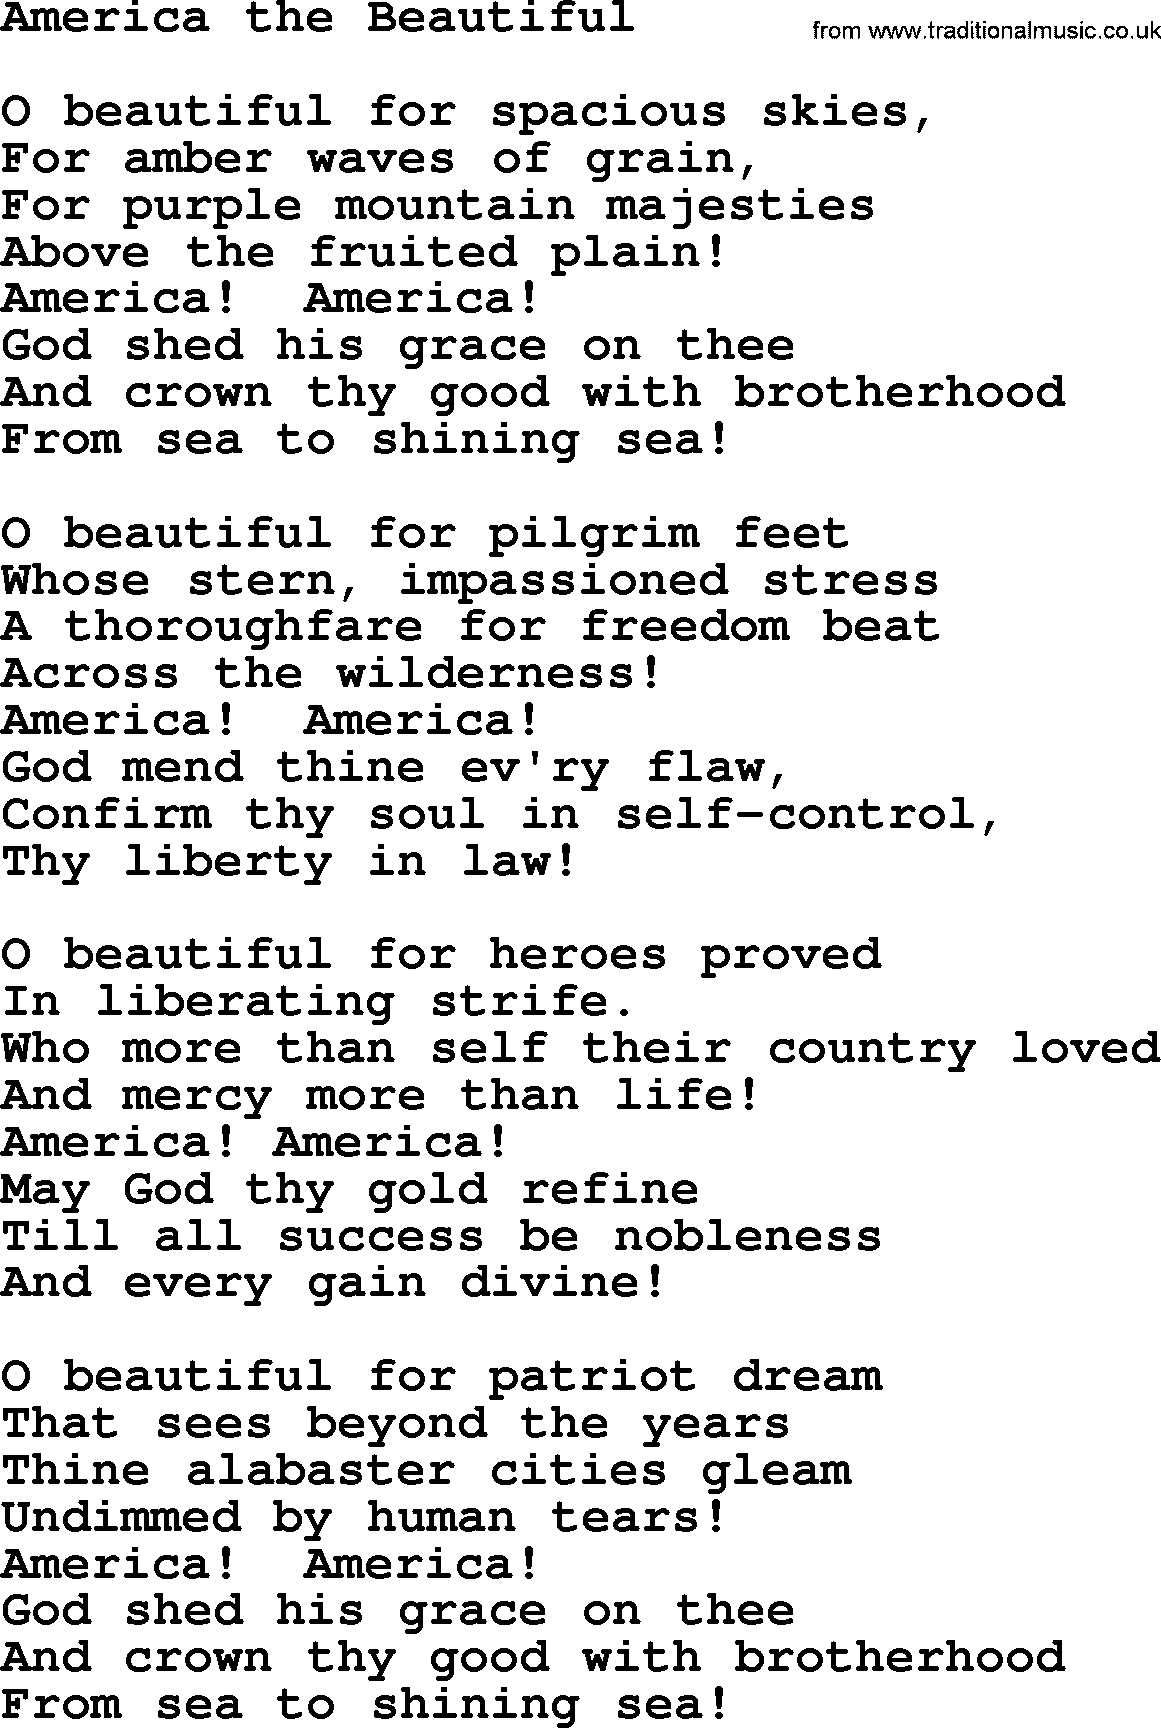 american christian song lyrics